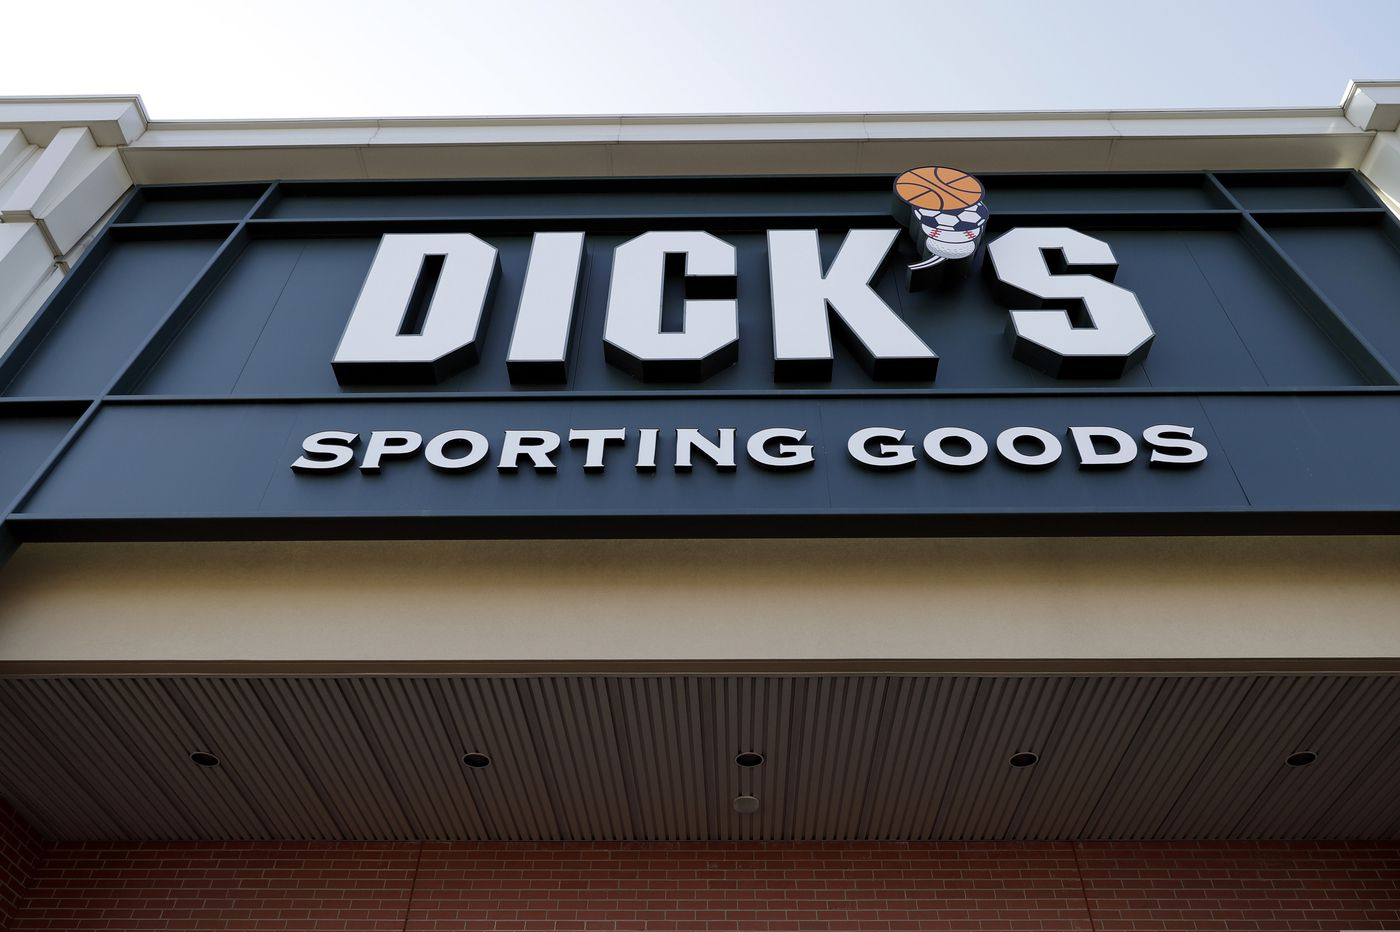 Dick's Sporting Goods reports strong earnings amid experiment in reducing gun sales